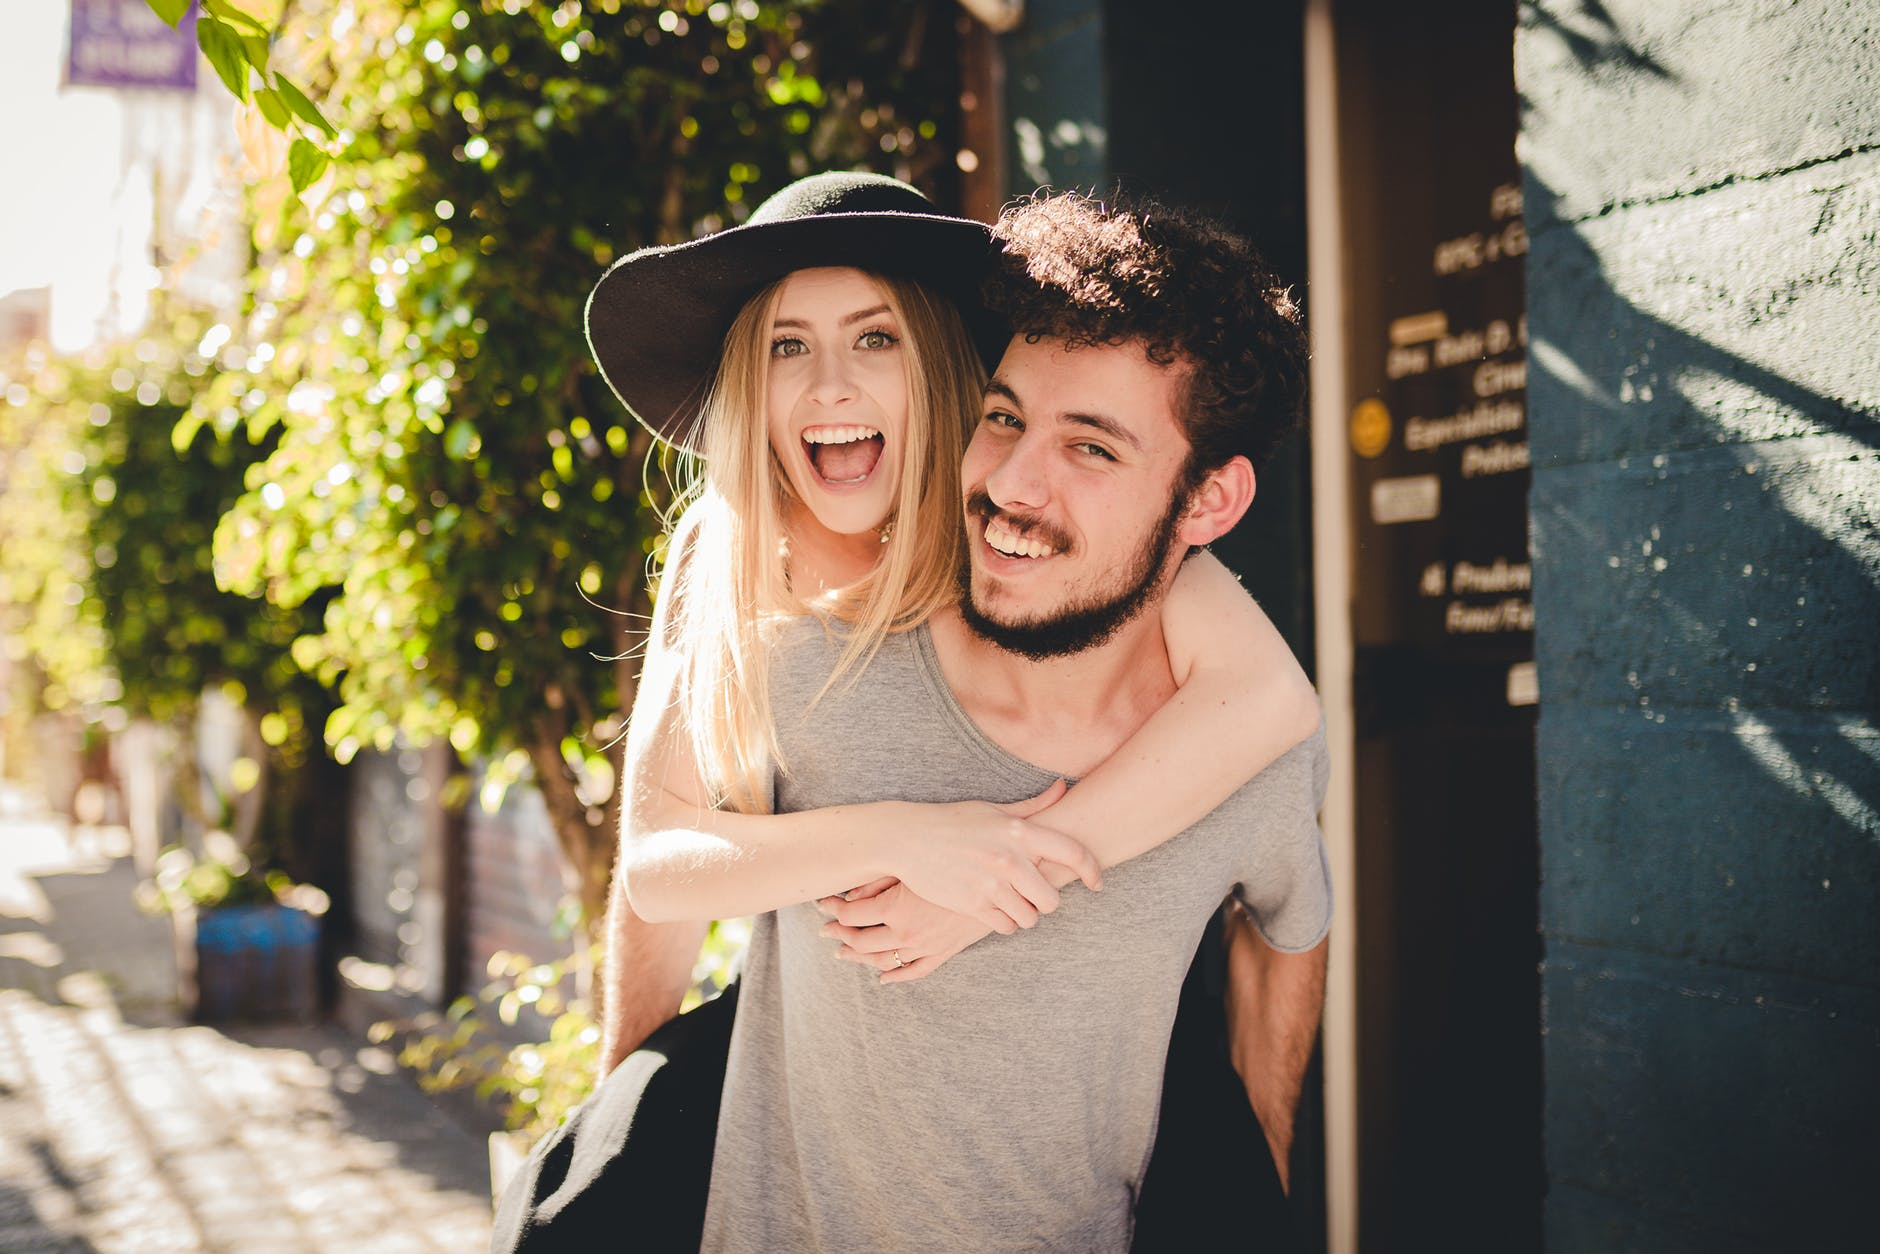 Tips You Should Keep in Mind When Trying to Get Your Ex Back